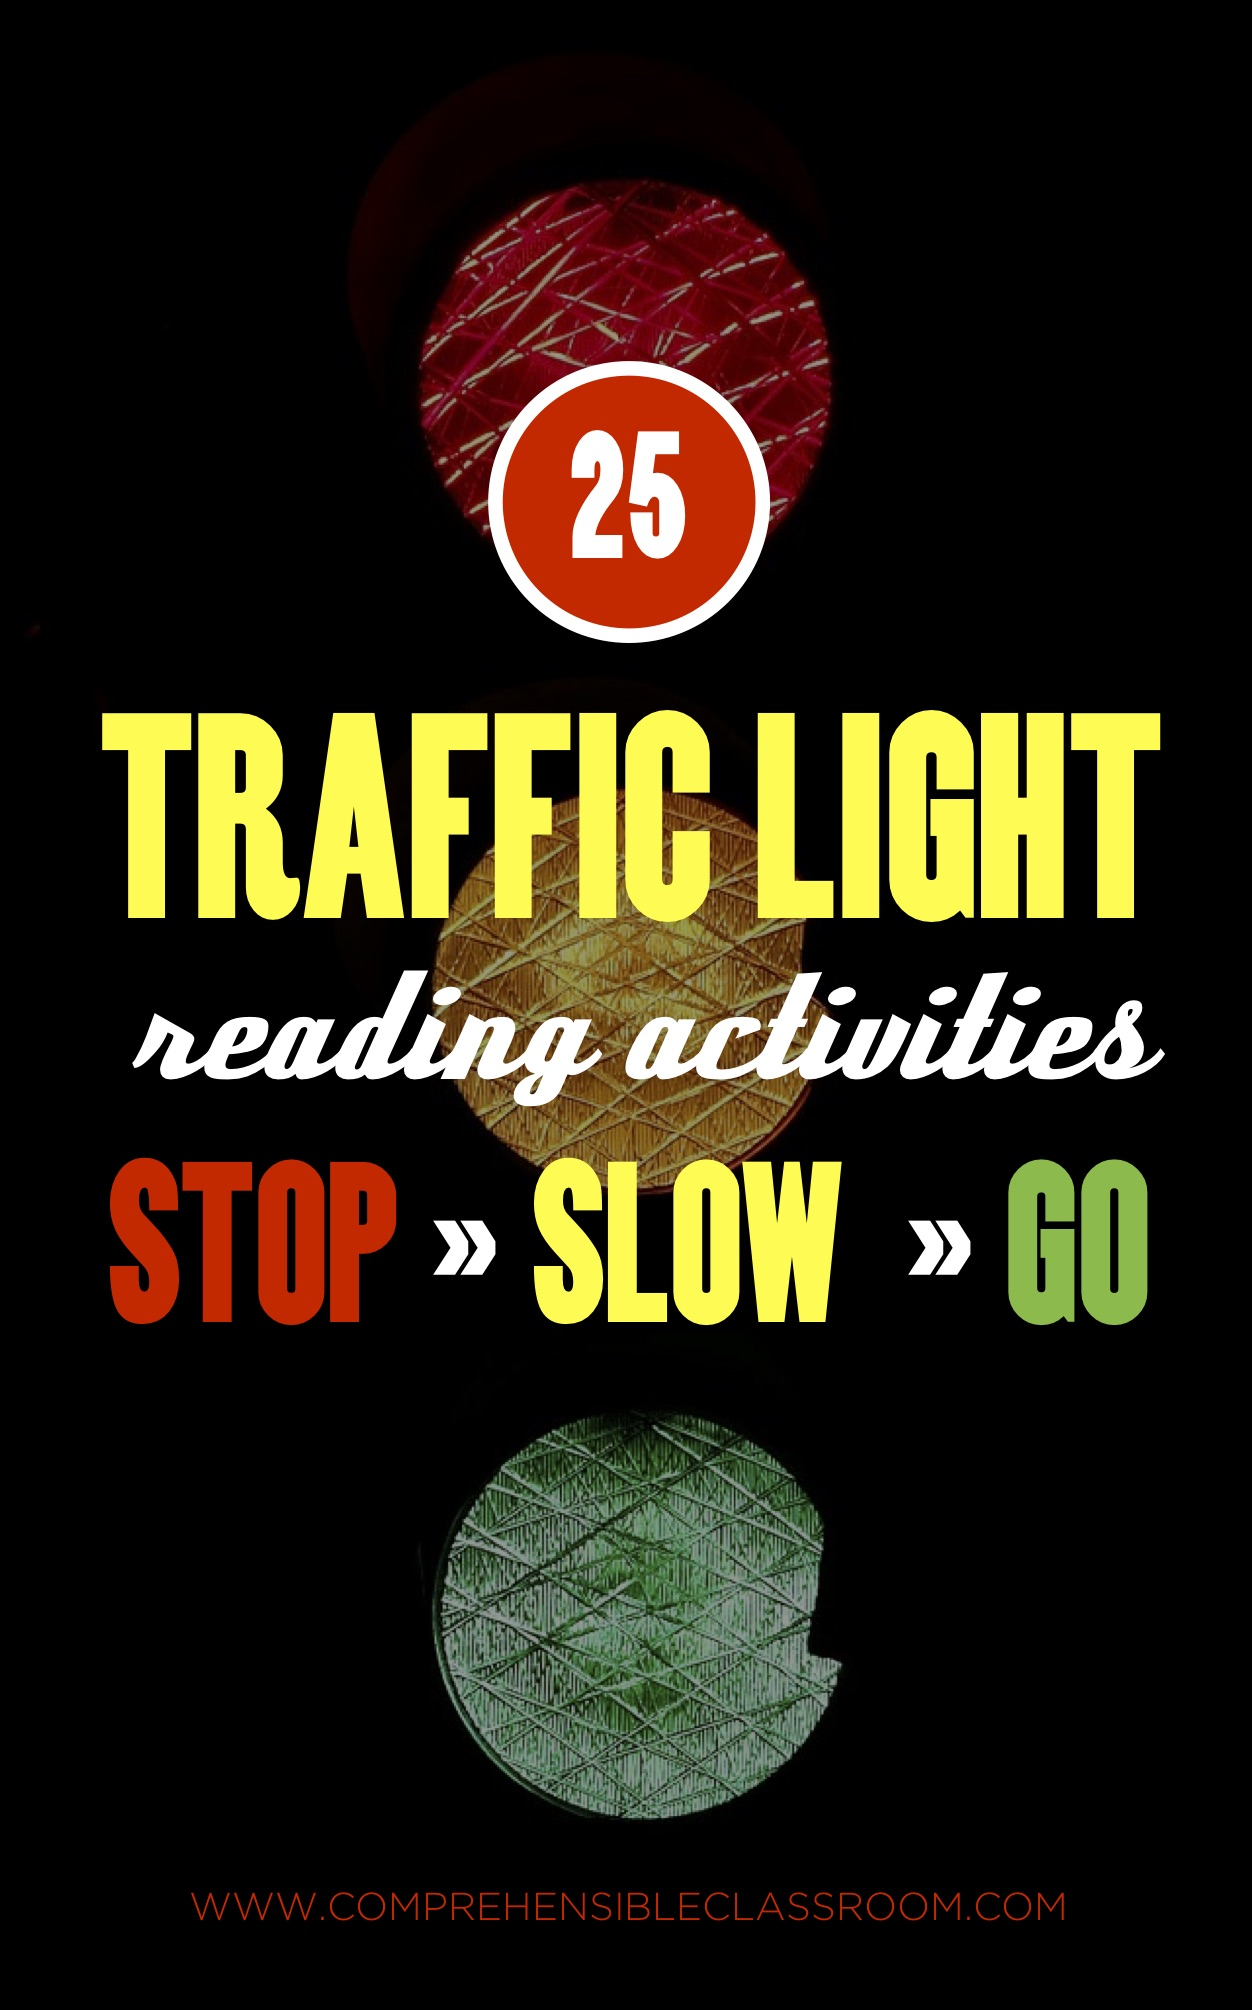 25 reading activities: some that STOP the reading process, others that SLOW the reading process, and others that let you GO and keep reading! Great for language classes.